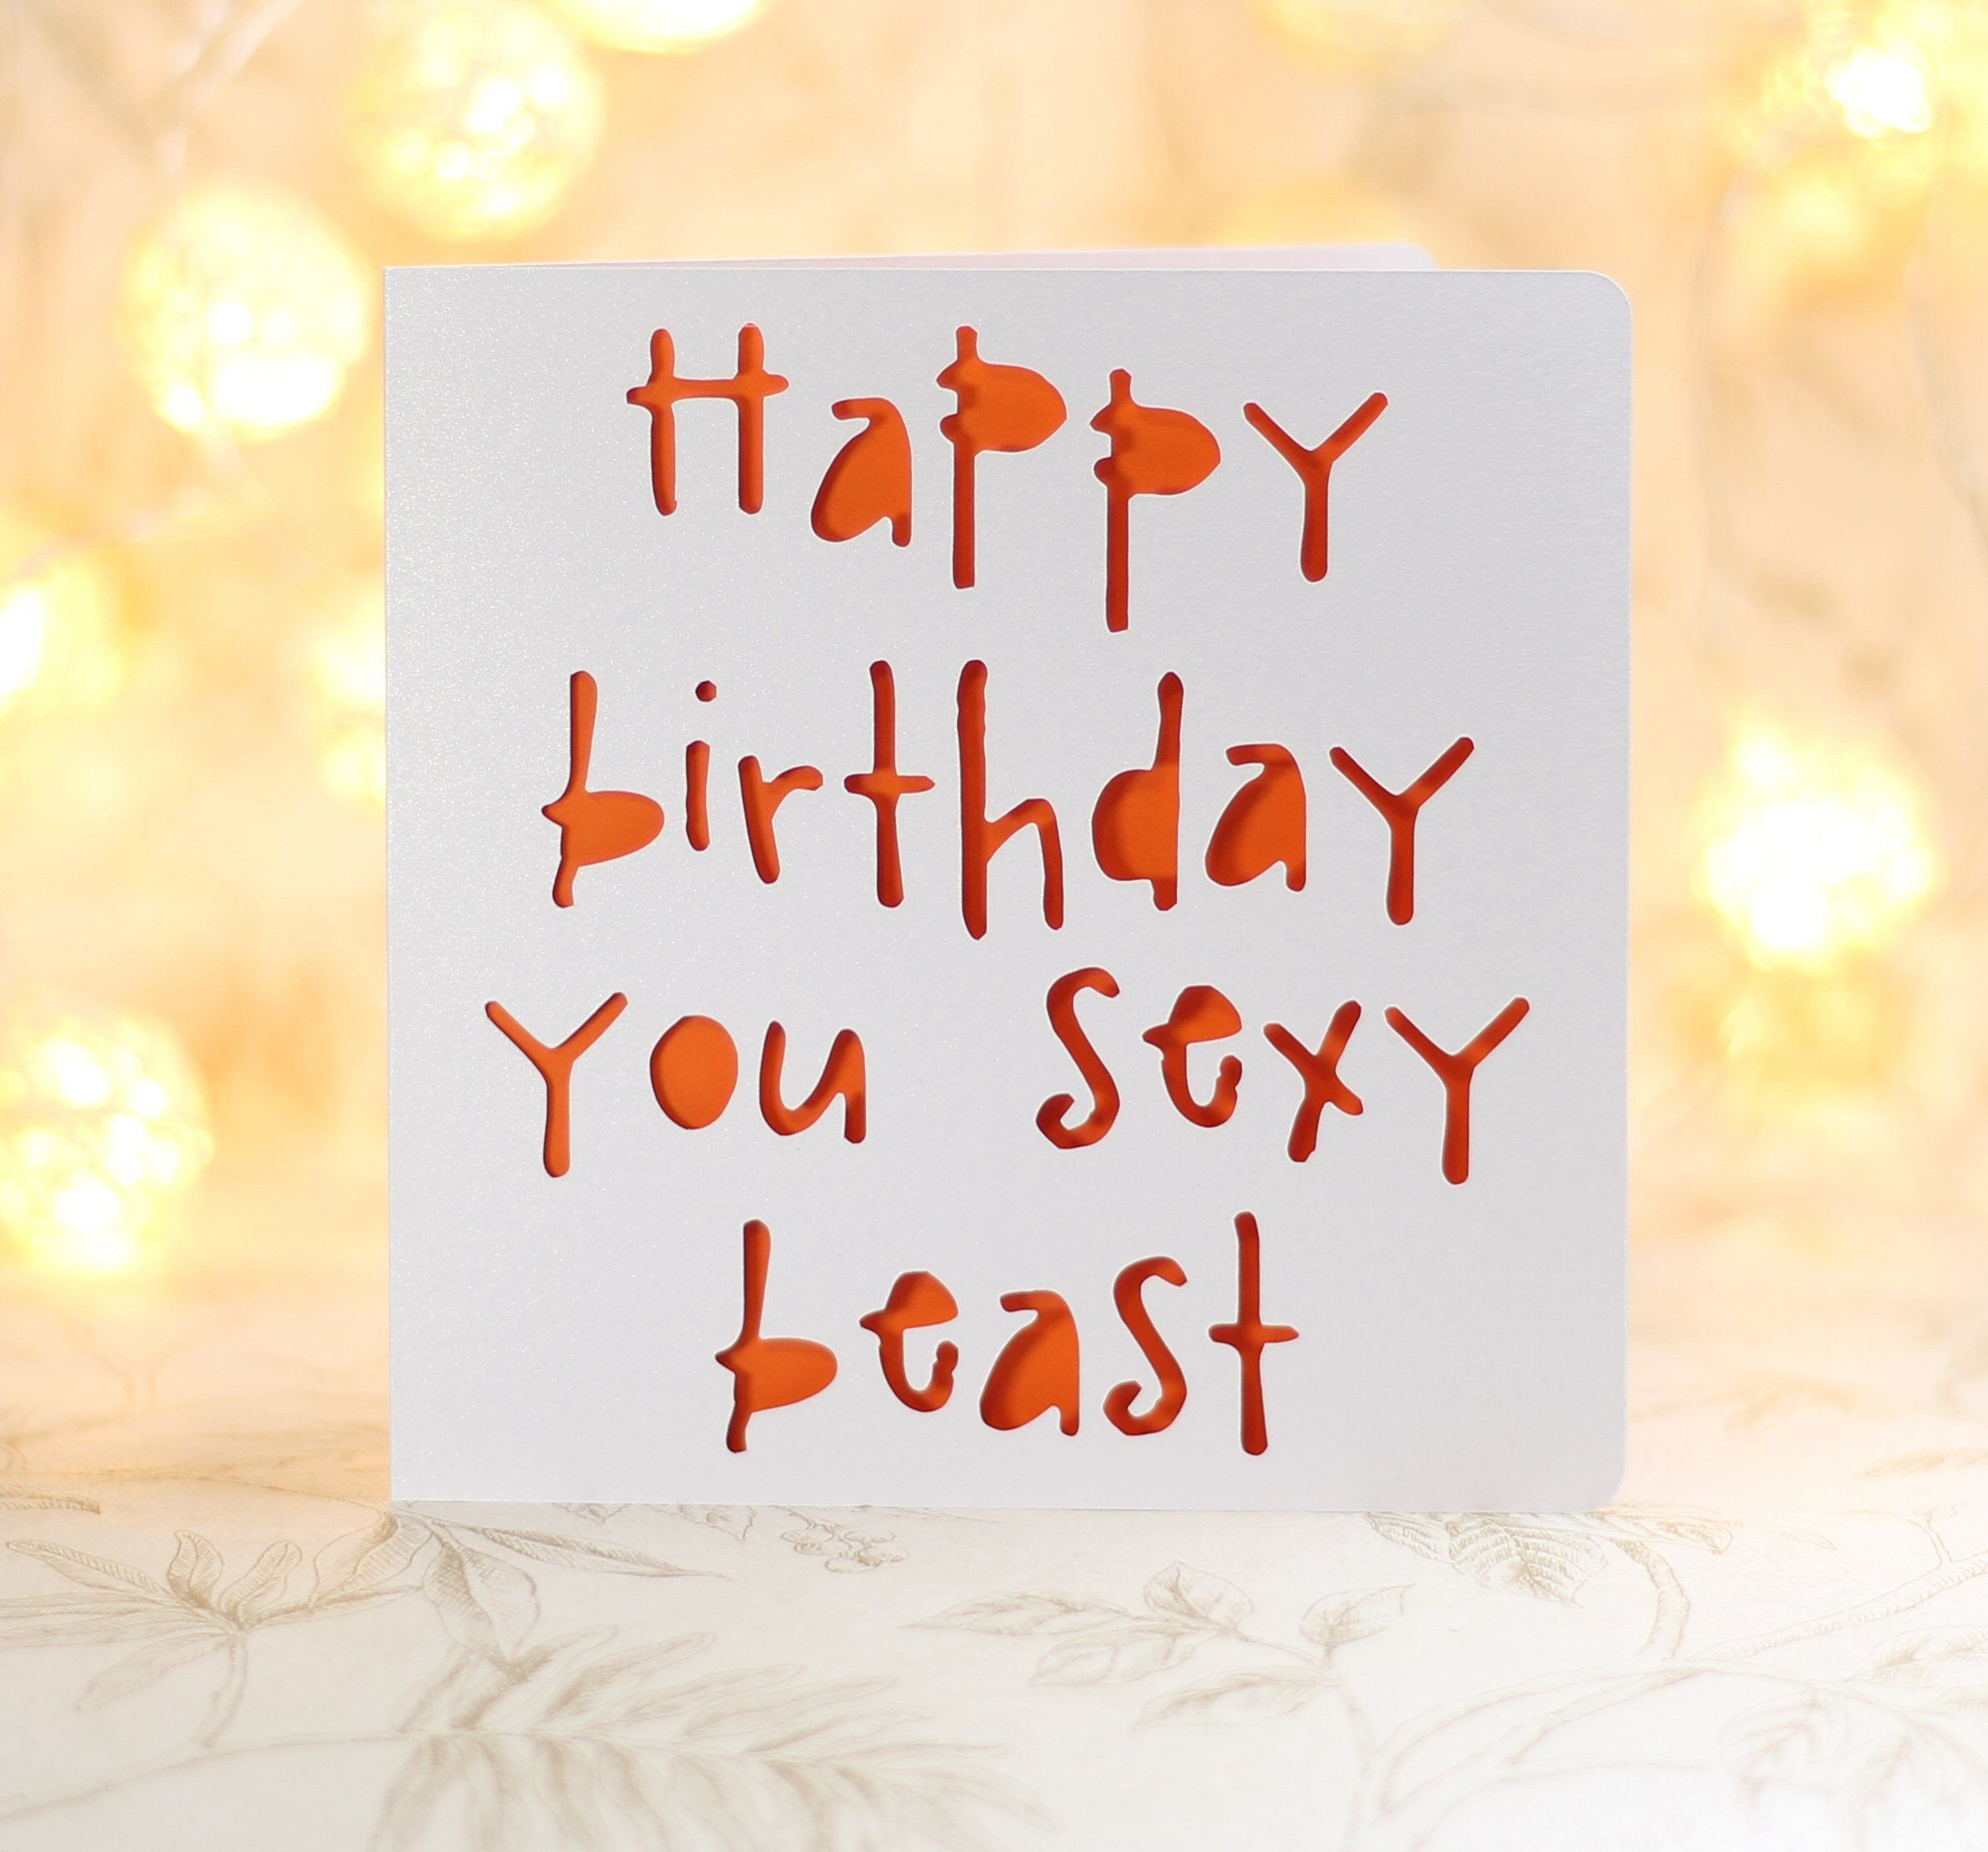 Happy Birthday You y Beast card for boyfriend for husband